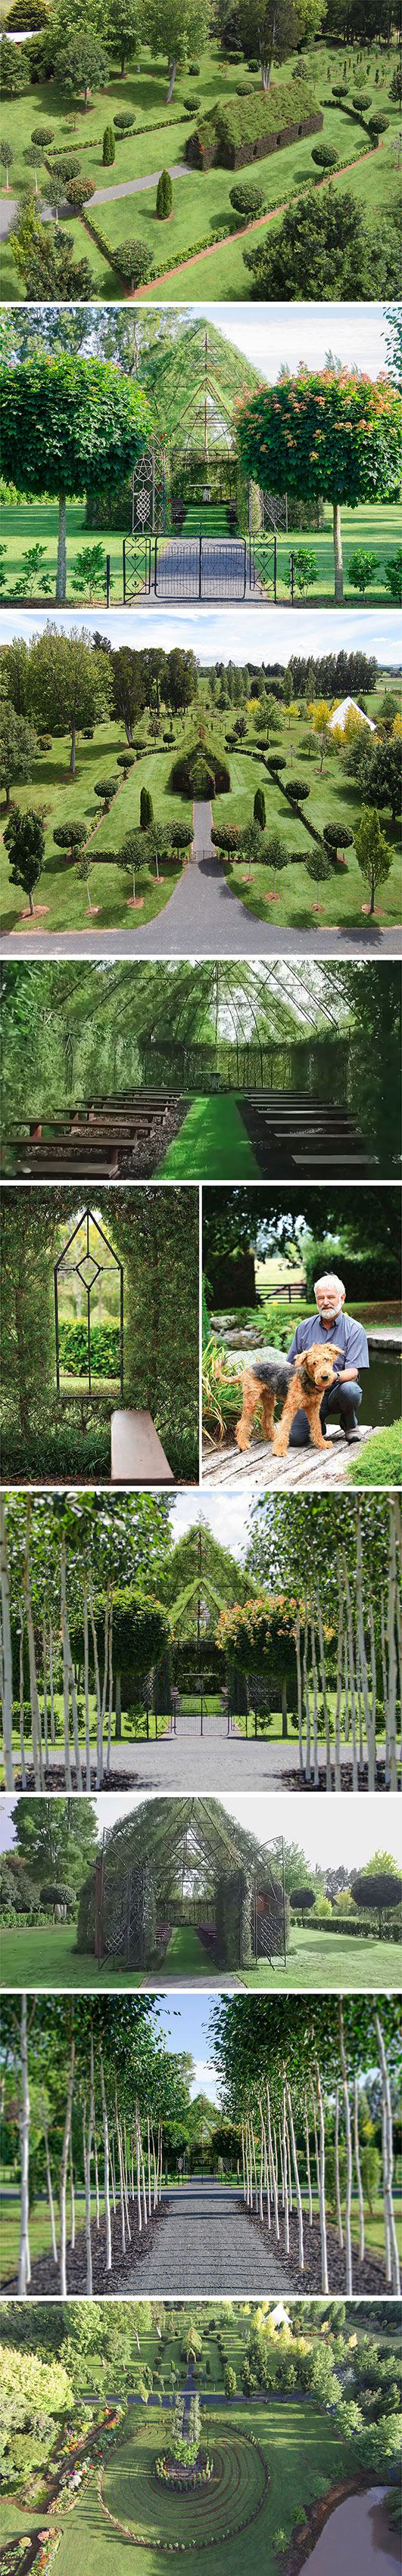 The enchantingly beautiful live-tree church in New Zealander Brian Cox's backyard is already impressive enough, but it's even more amazing when you learn that it took him only 4 years to create!